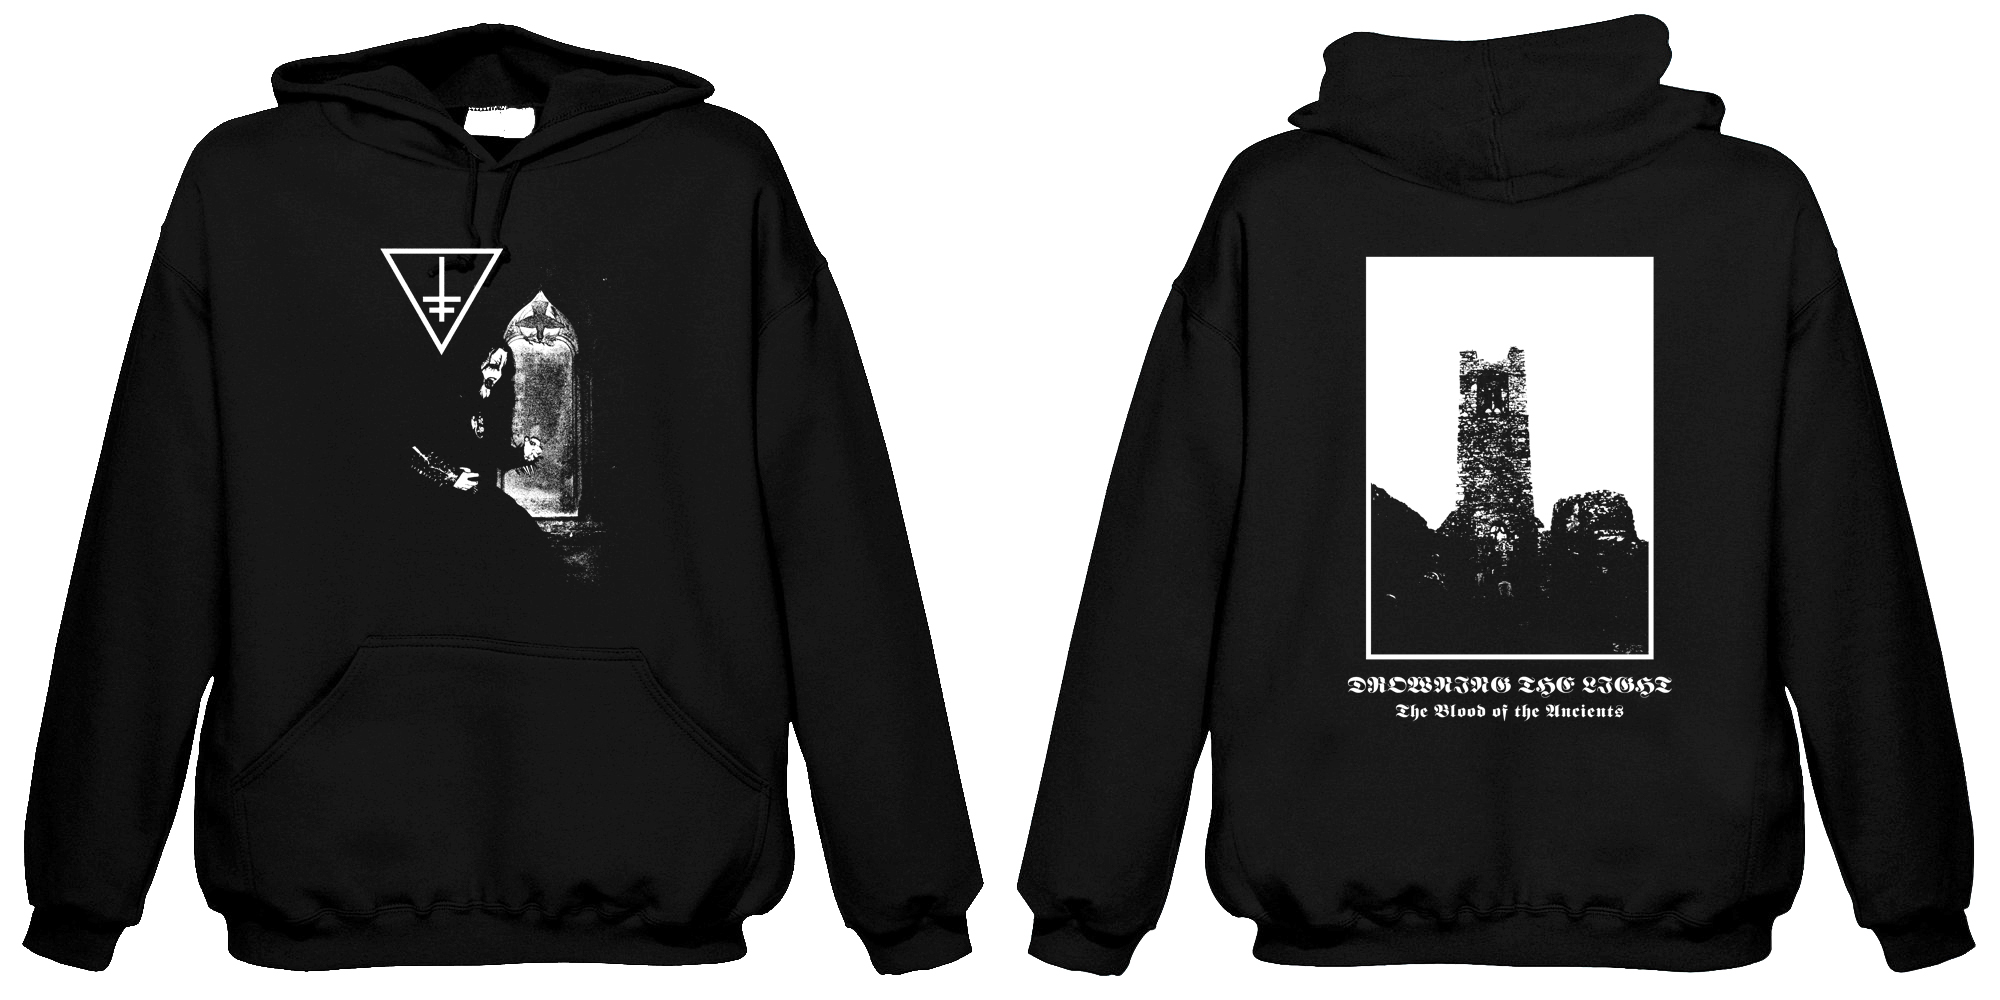 Drowning The Light - The Blood of the Ancients (Hooded sweatshirt)